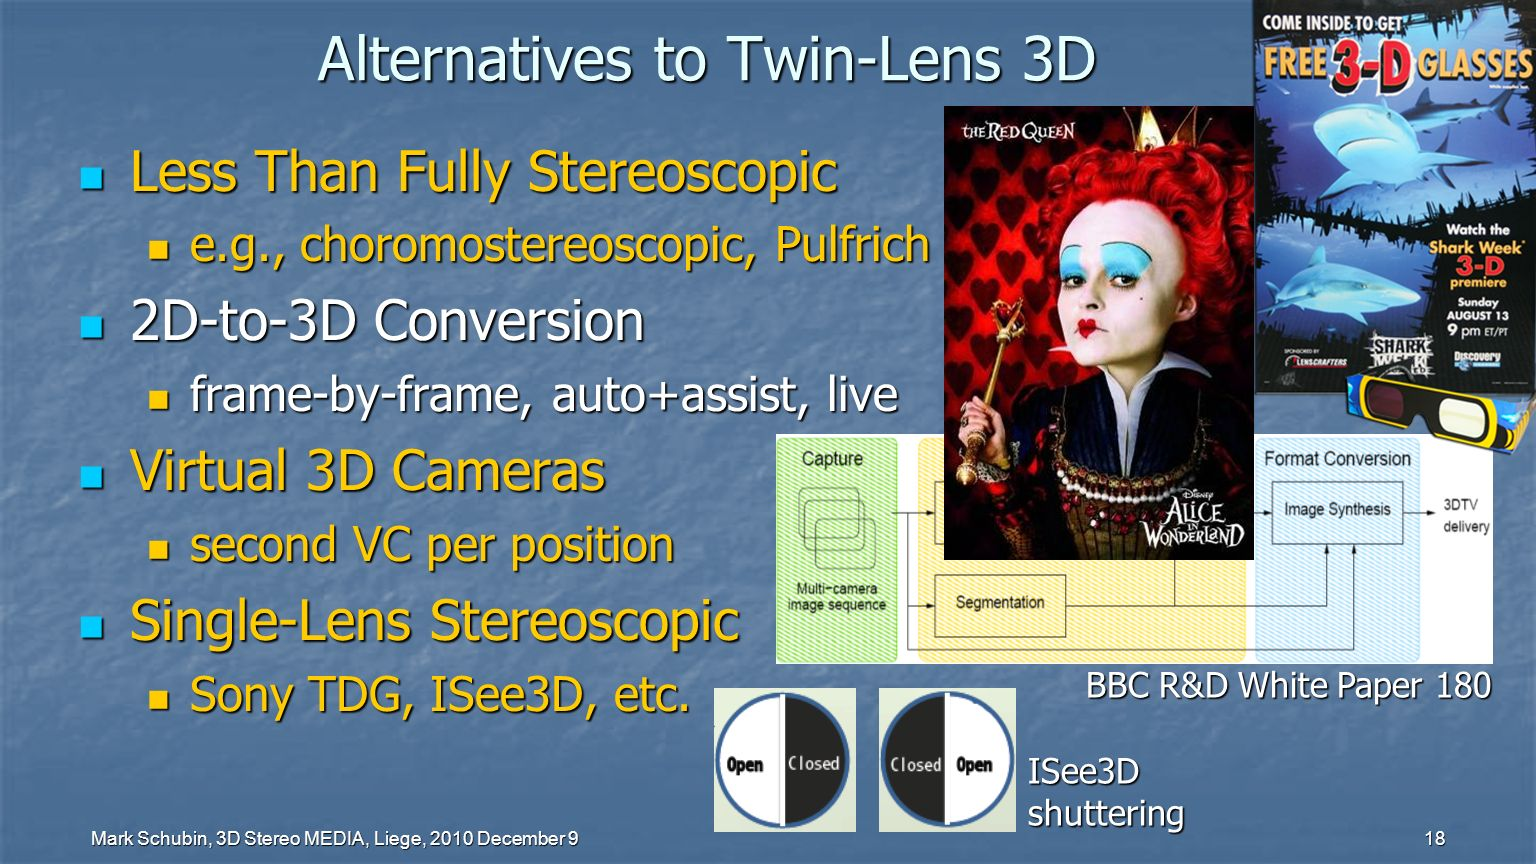 Mark Schubin, 3D Stereo MEDIA, Liege, 2010 December 9 17 The Elusive Grail Can there be a 3D system with no ghosting no ghosting no V-A conflict or shrinking no V-A conflict or shrinking 2D-viewer compatibility 2D-viewer compatibility no extra personnel no extra personnel one lens & camera/position one lens & camera/position one signal path/recording one signal path/recording full resolution full resolution inexpensive glasses inexpensive glasses for all TVs & distribution.